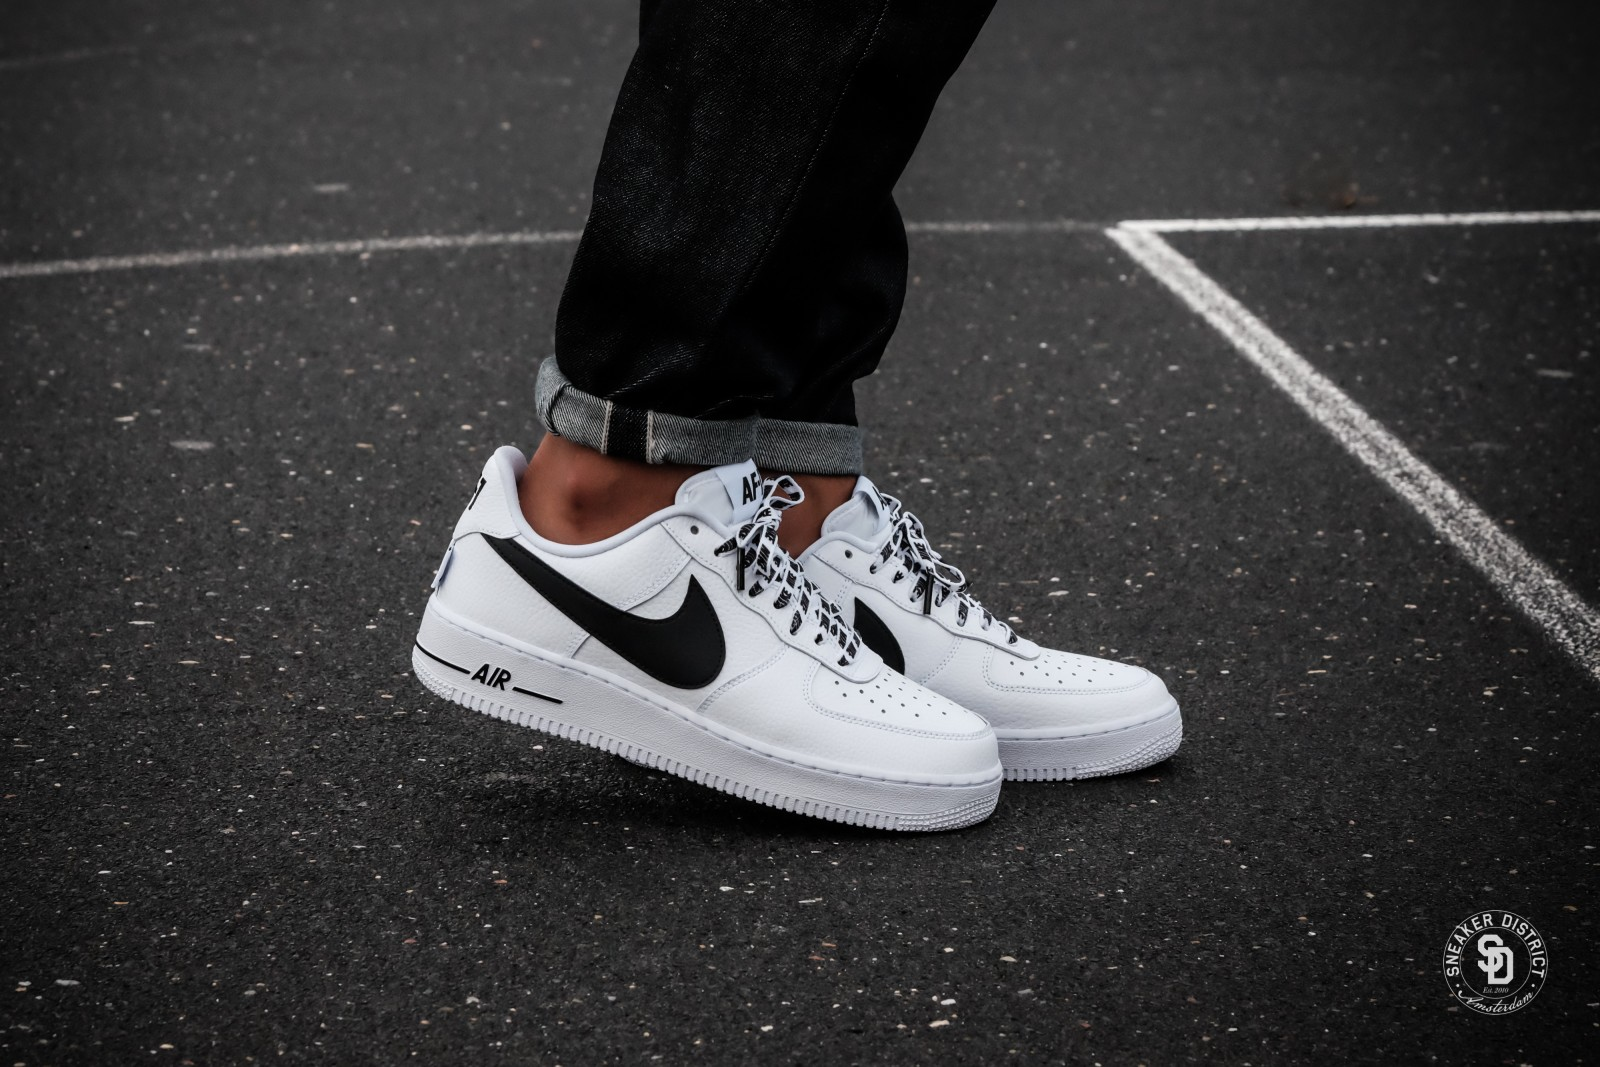 Nike Air Force 1 '07 LV8 NBA Pack White/Black